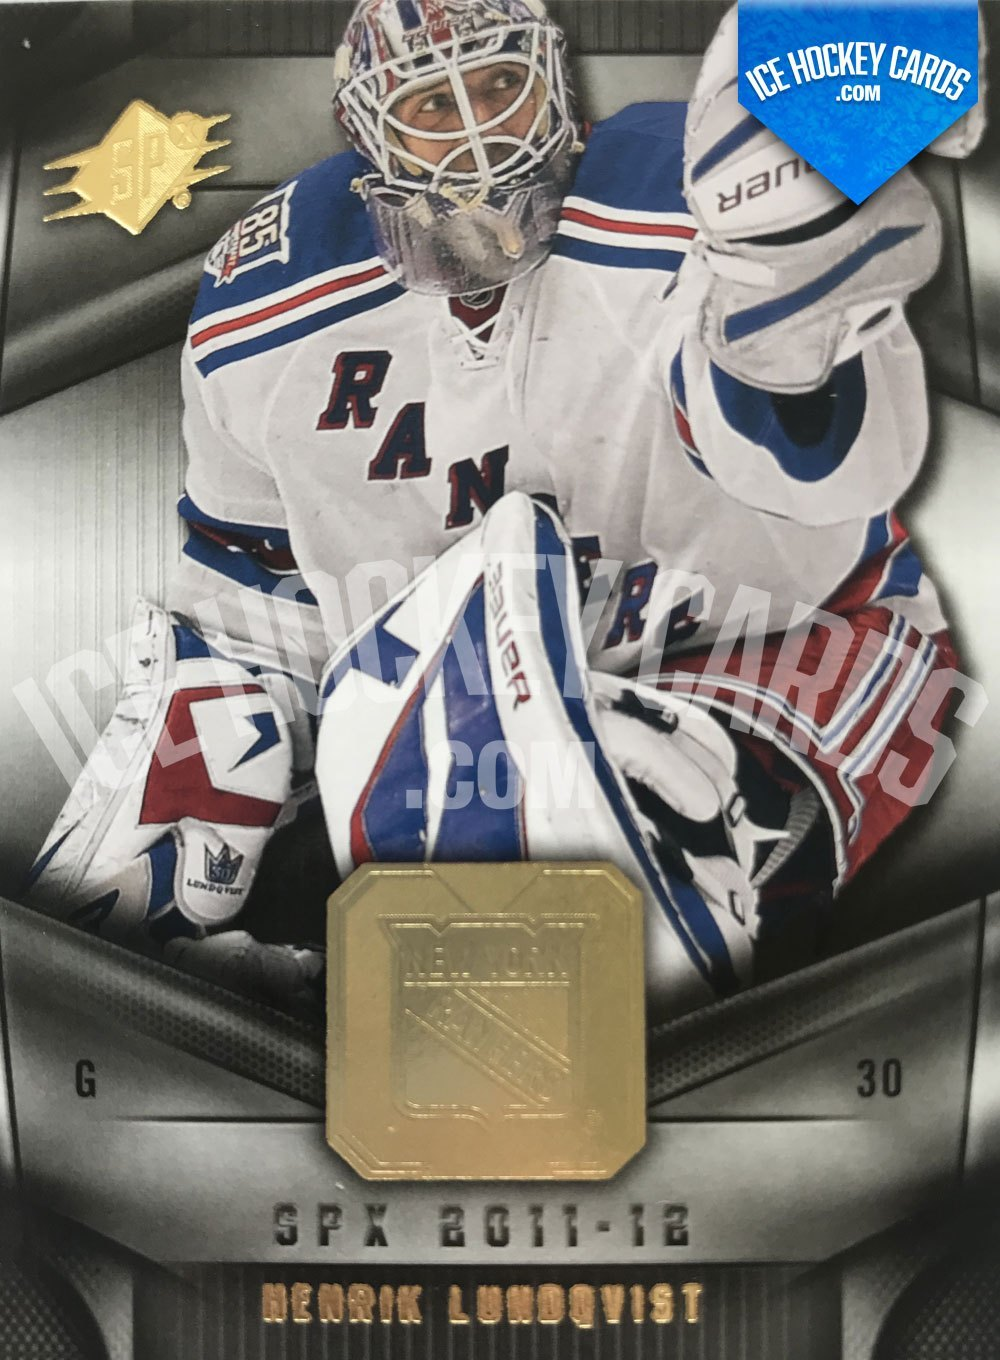 Upper Deck - SPx 11-12 - Henrik Lundqvist Base Card